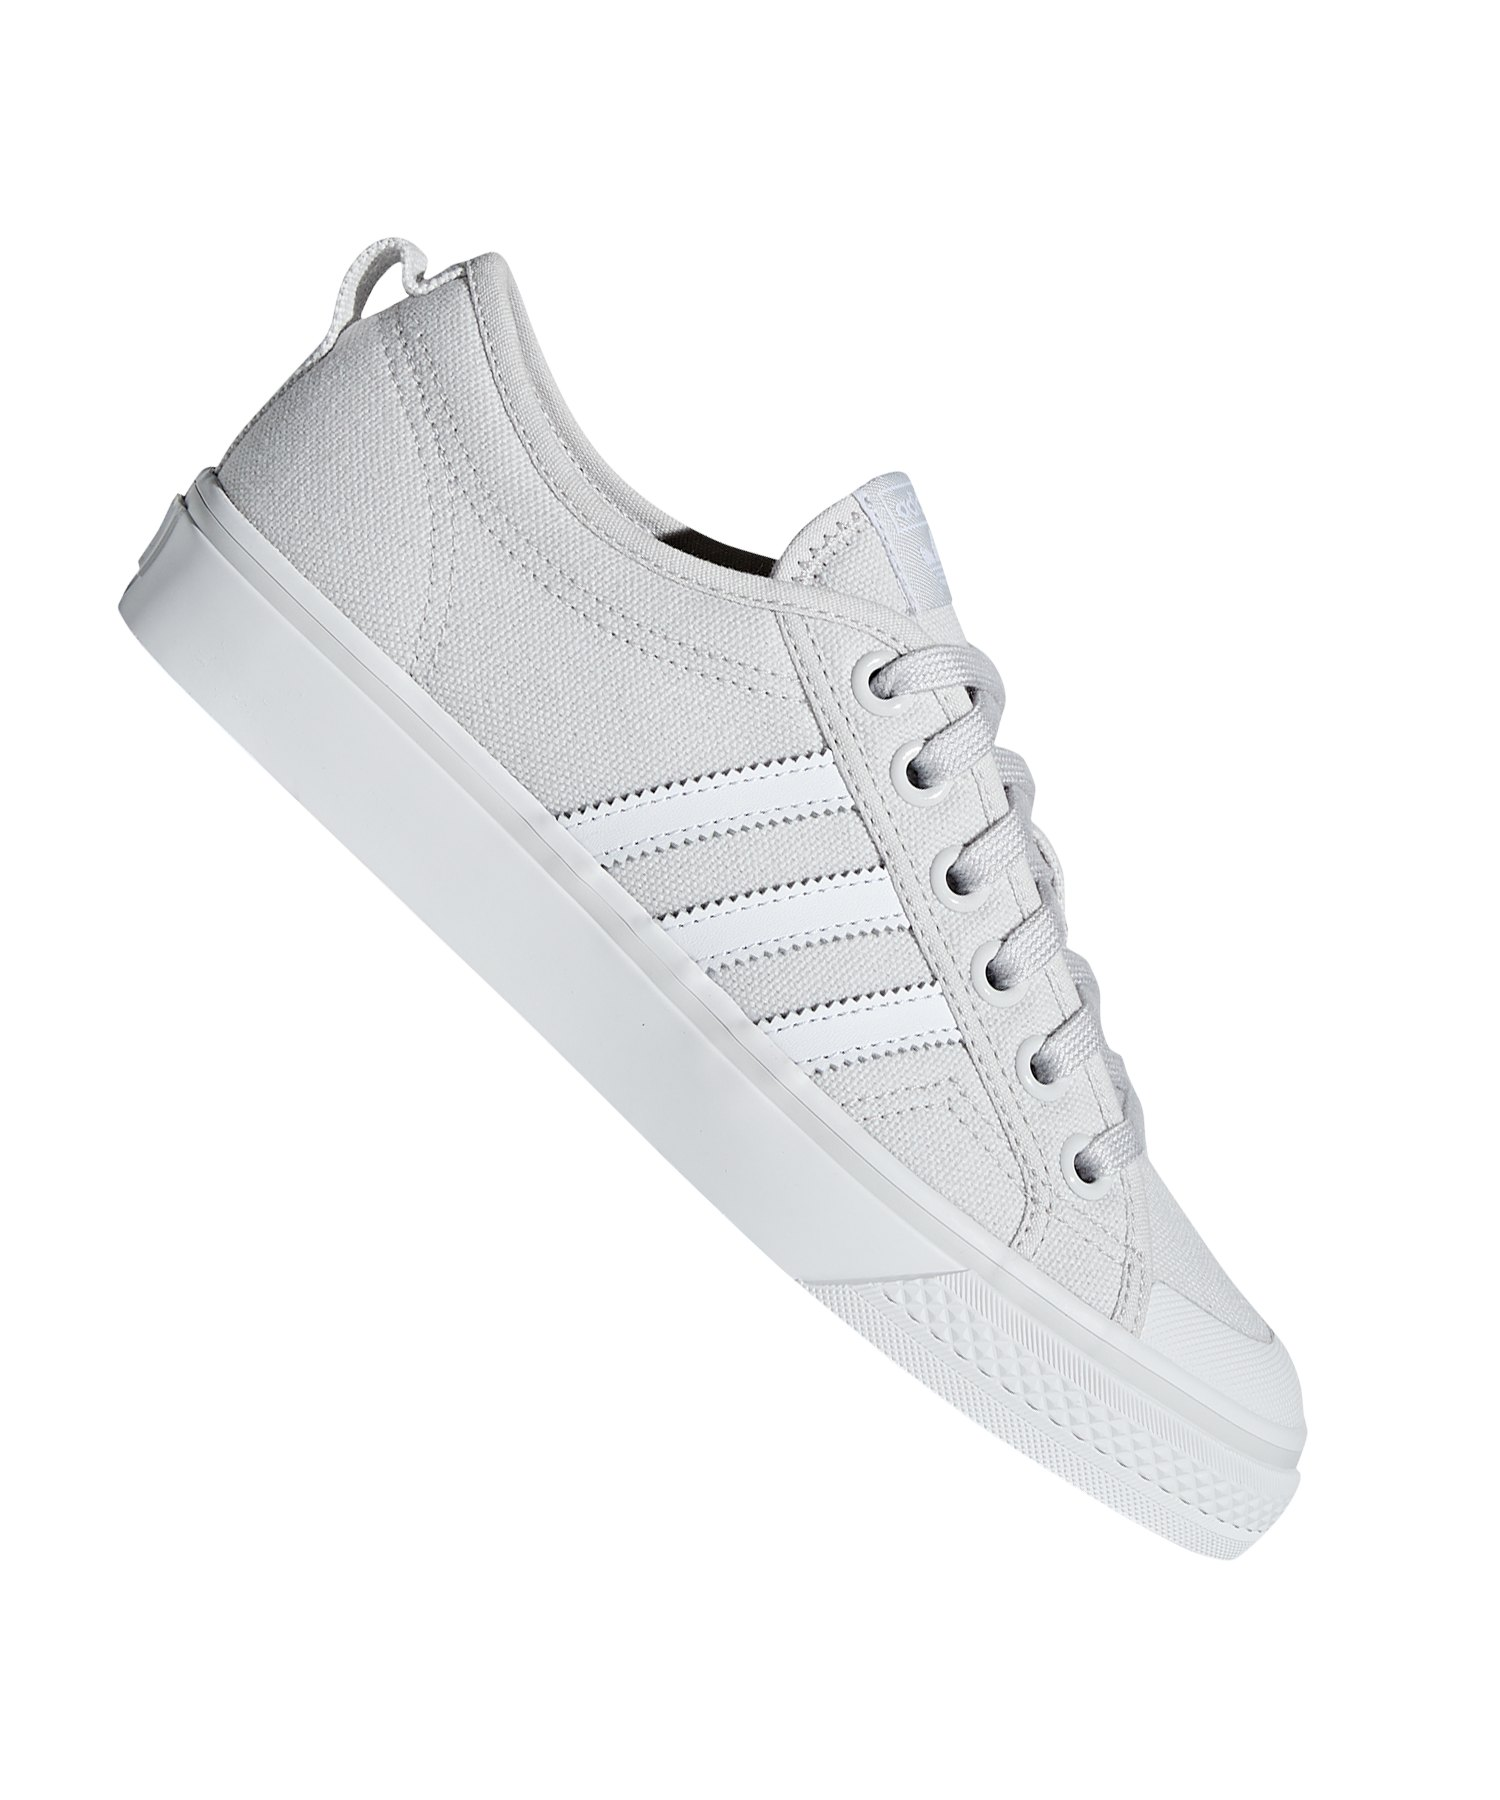 adidas Originals Nizza Sneaker Damen Grau Weiss